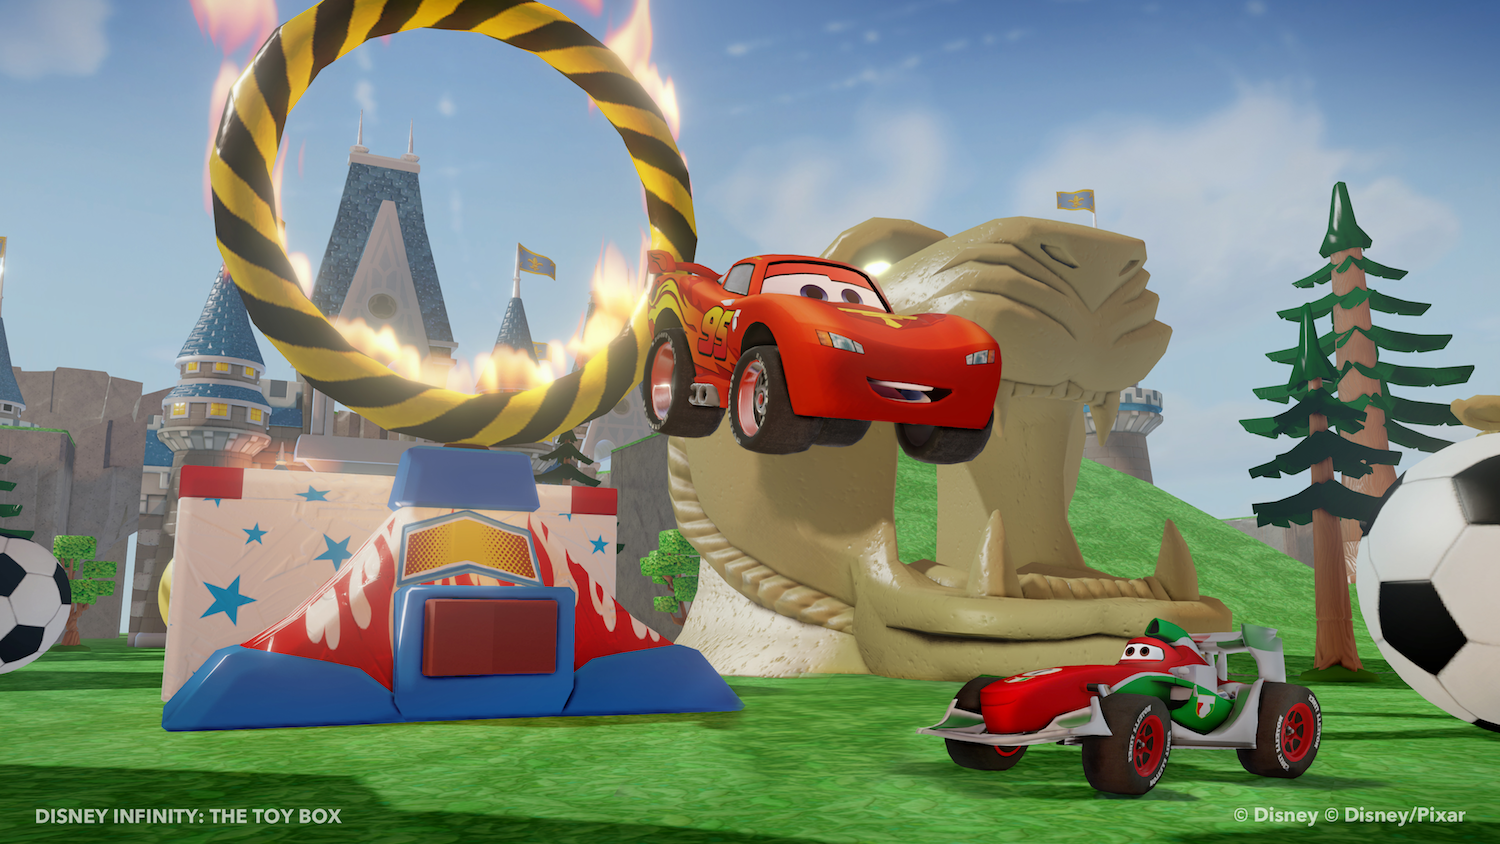 Studio Behind 'Disney Infinity' Working On 'Cars 3' Video Game